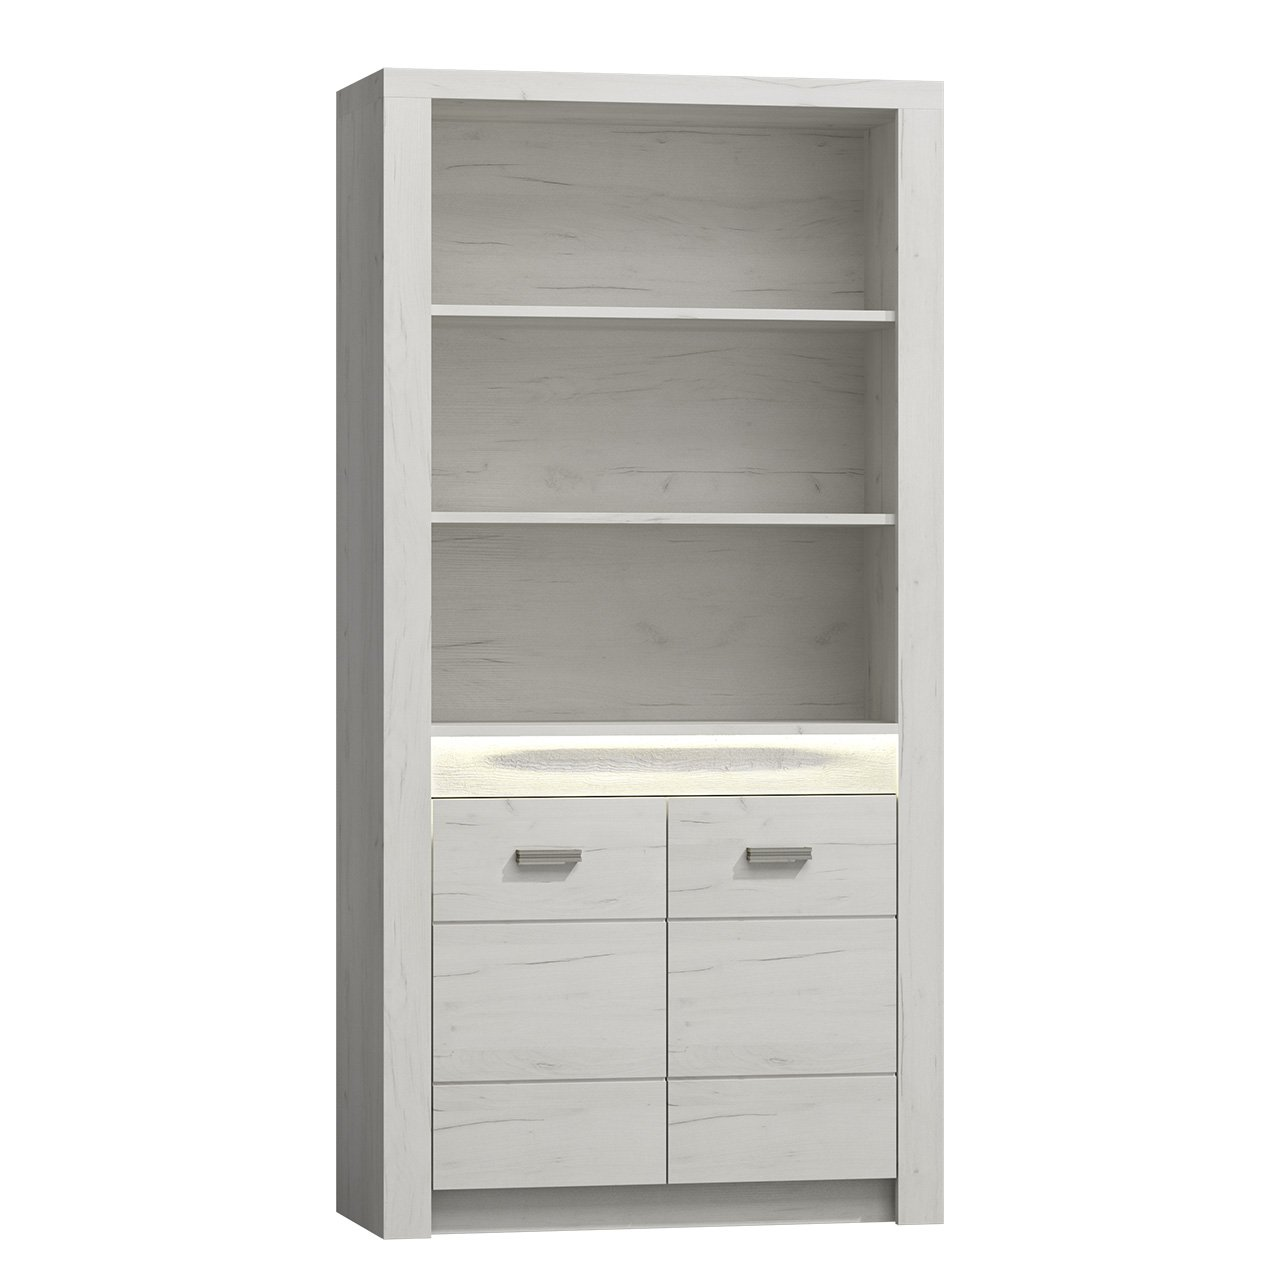 Mirjan24  Regal Indiano I-05, Standregal, Bücherregal, Hochschrank, Universal Regal, Wohnzimmer Set (Kraft Weiss, mit warmweißer LED-Beleuchtung)